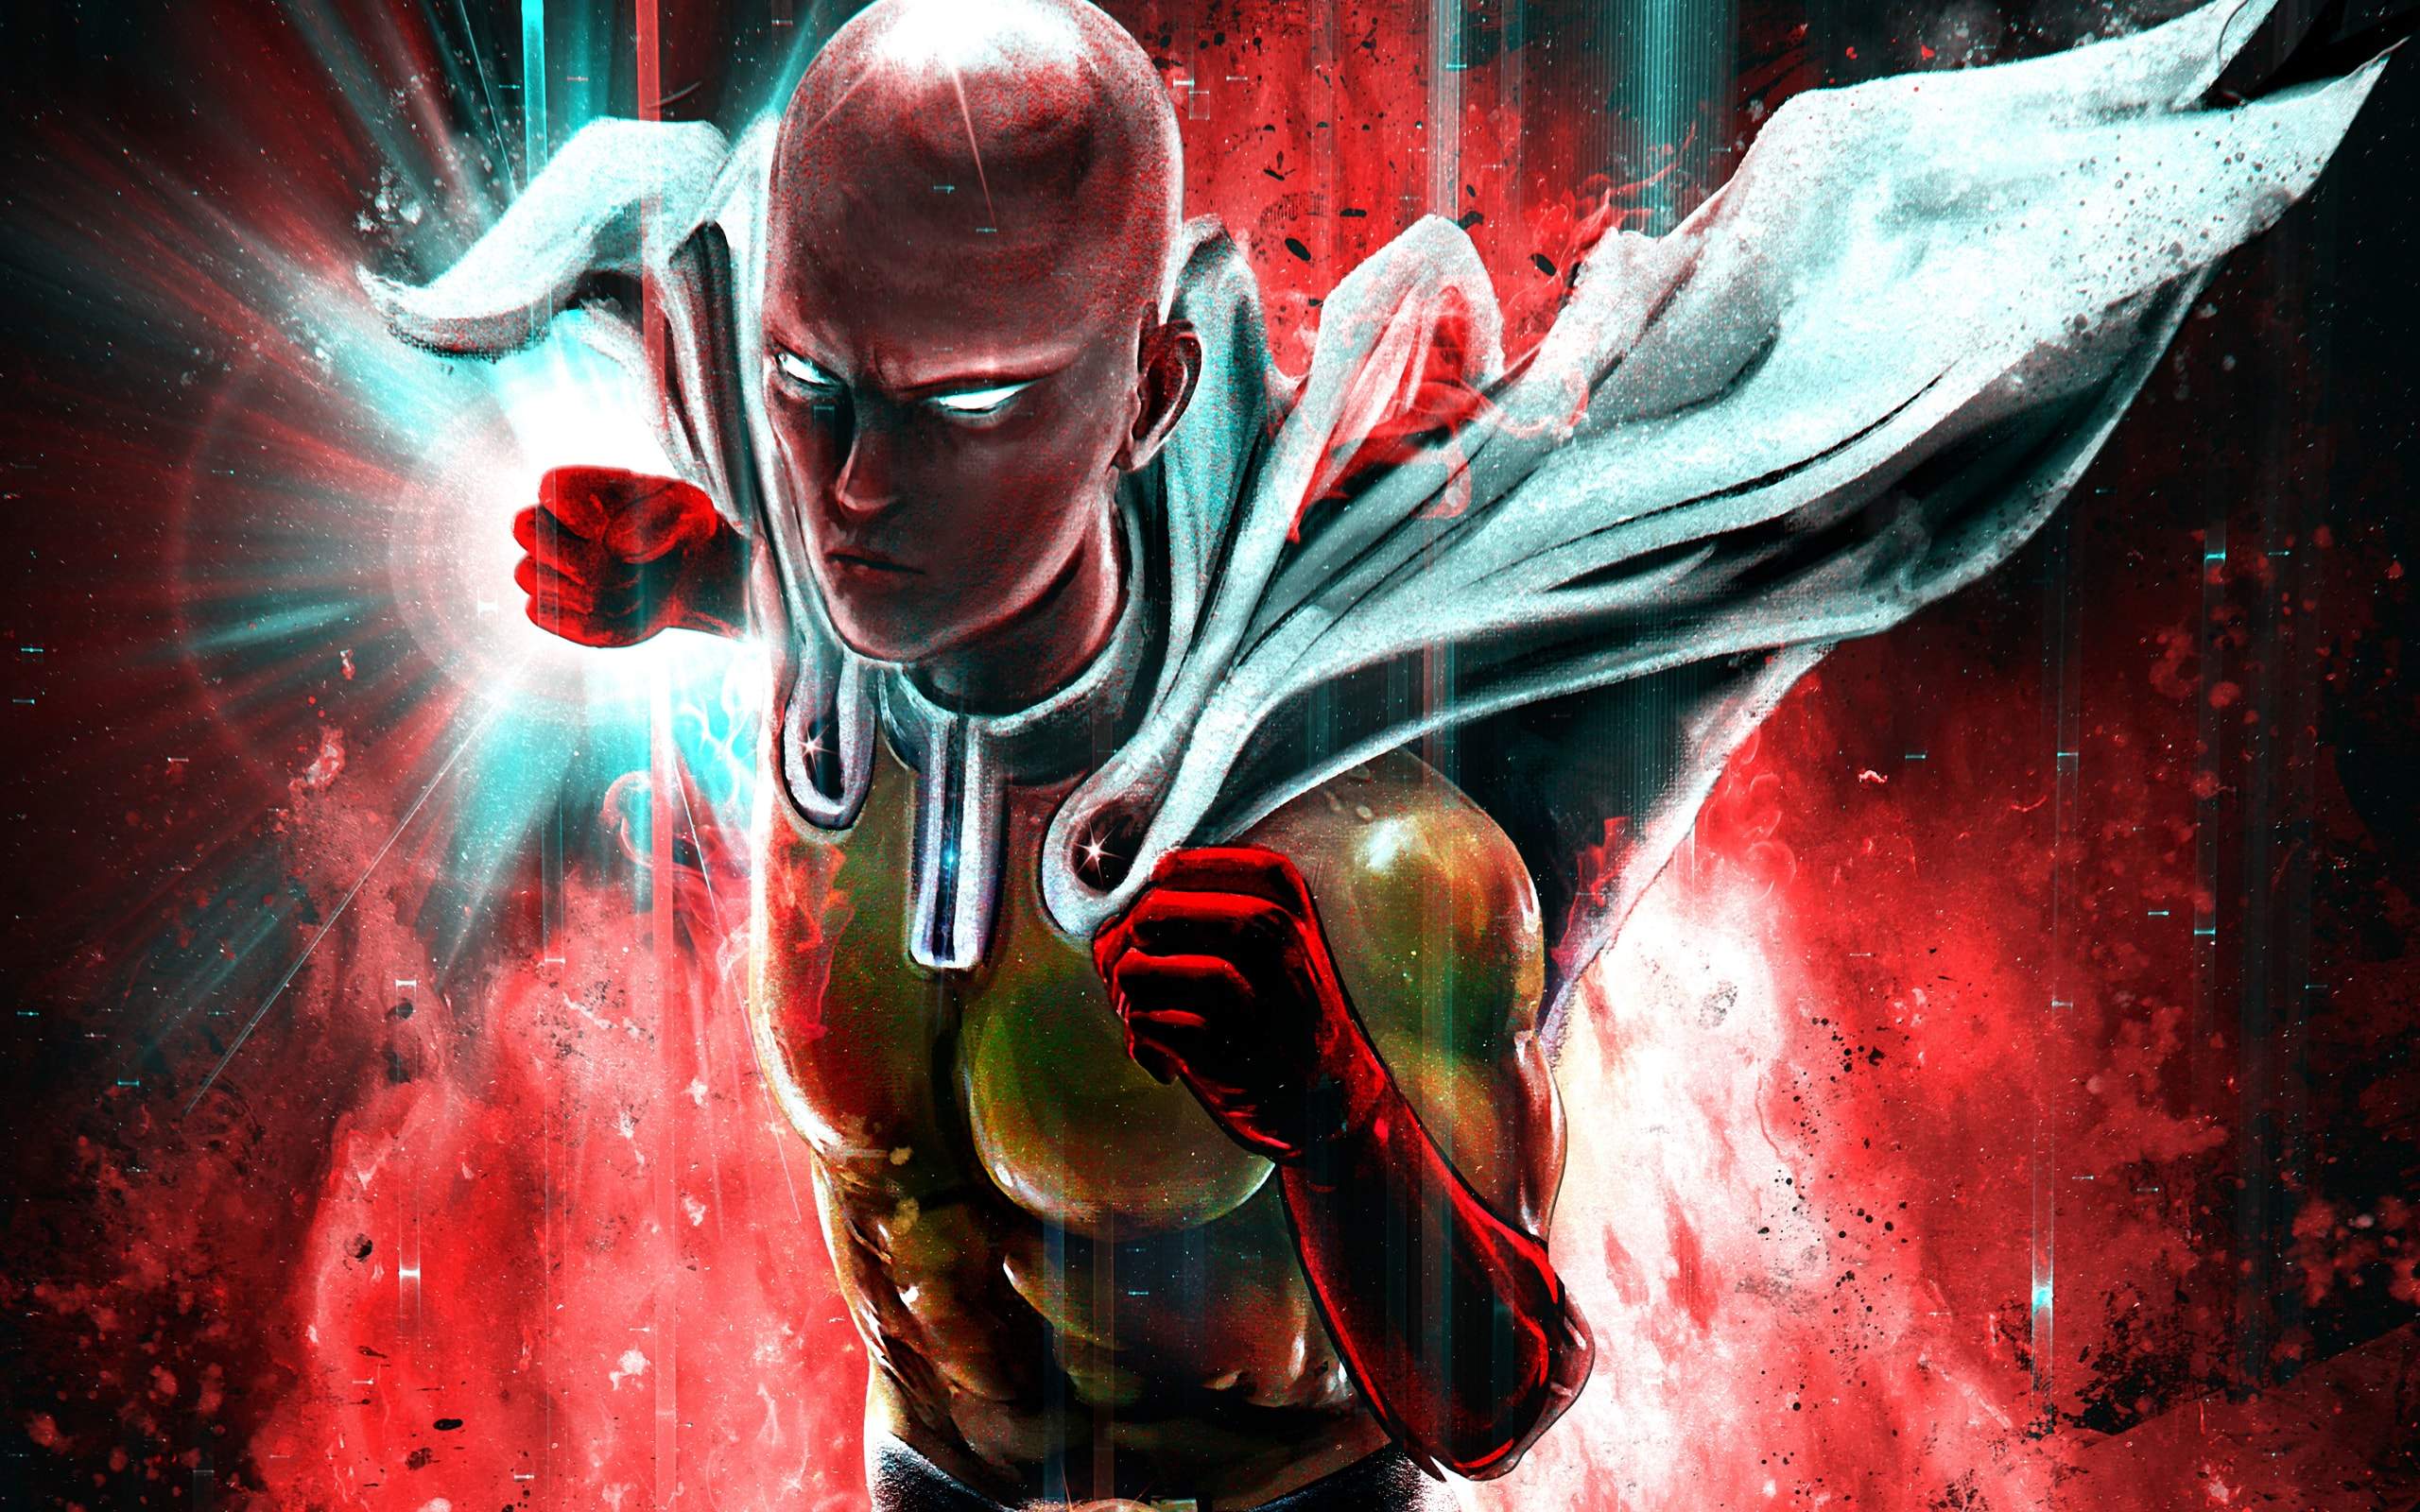 Wallpaper Of One Punch Man Saitama One Punch Man 2 Anime